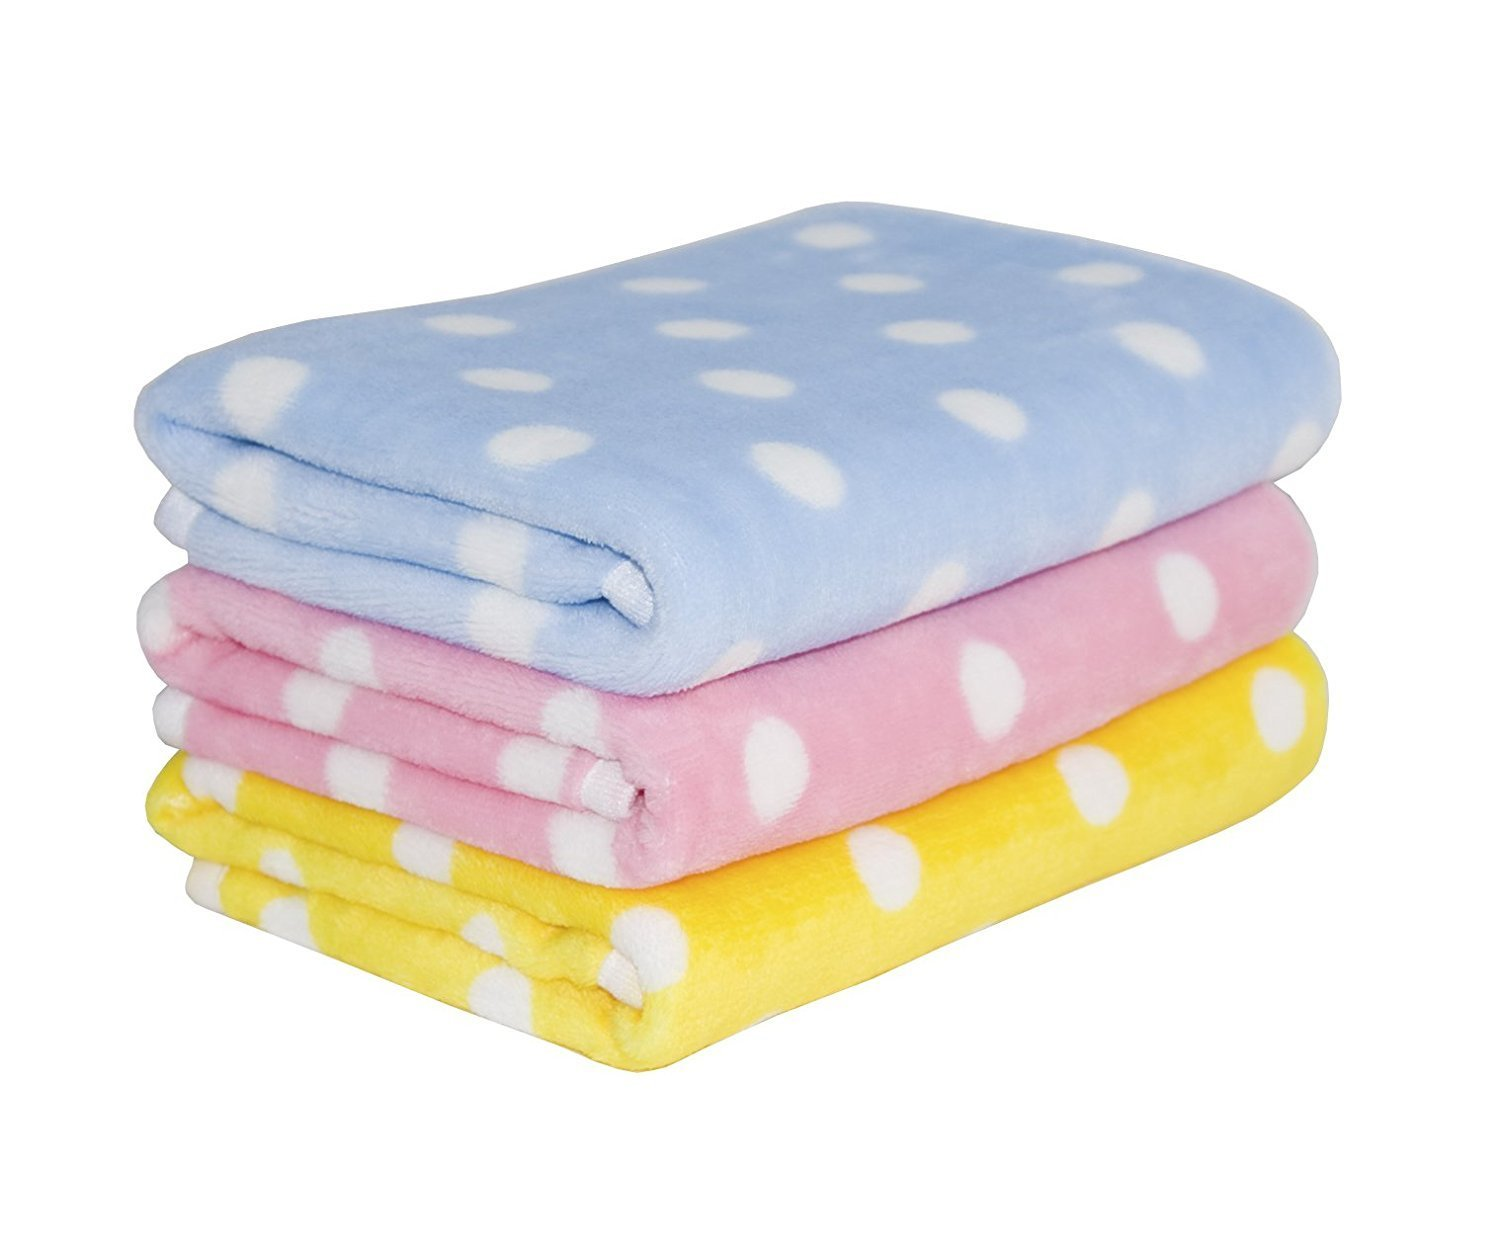 3 Pack 3 Colors Fleece Pet Dog Blanket & Lovely Baby Best Puppy Blanket for Car,Couch,Bed & Soft Small Dog and Cat Blankets